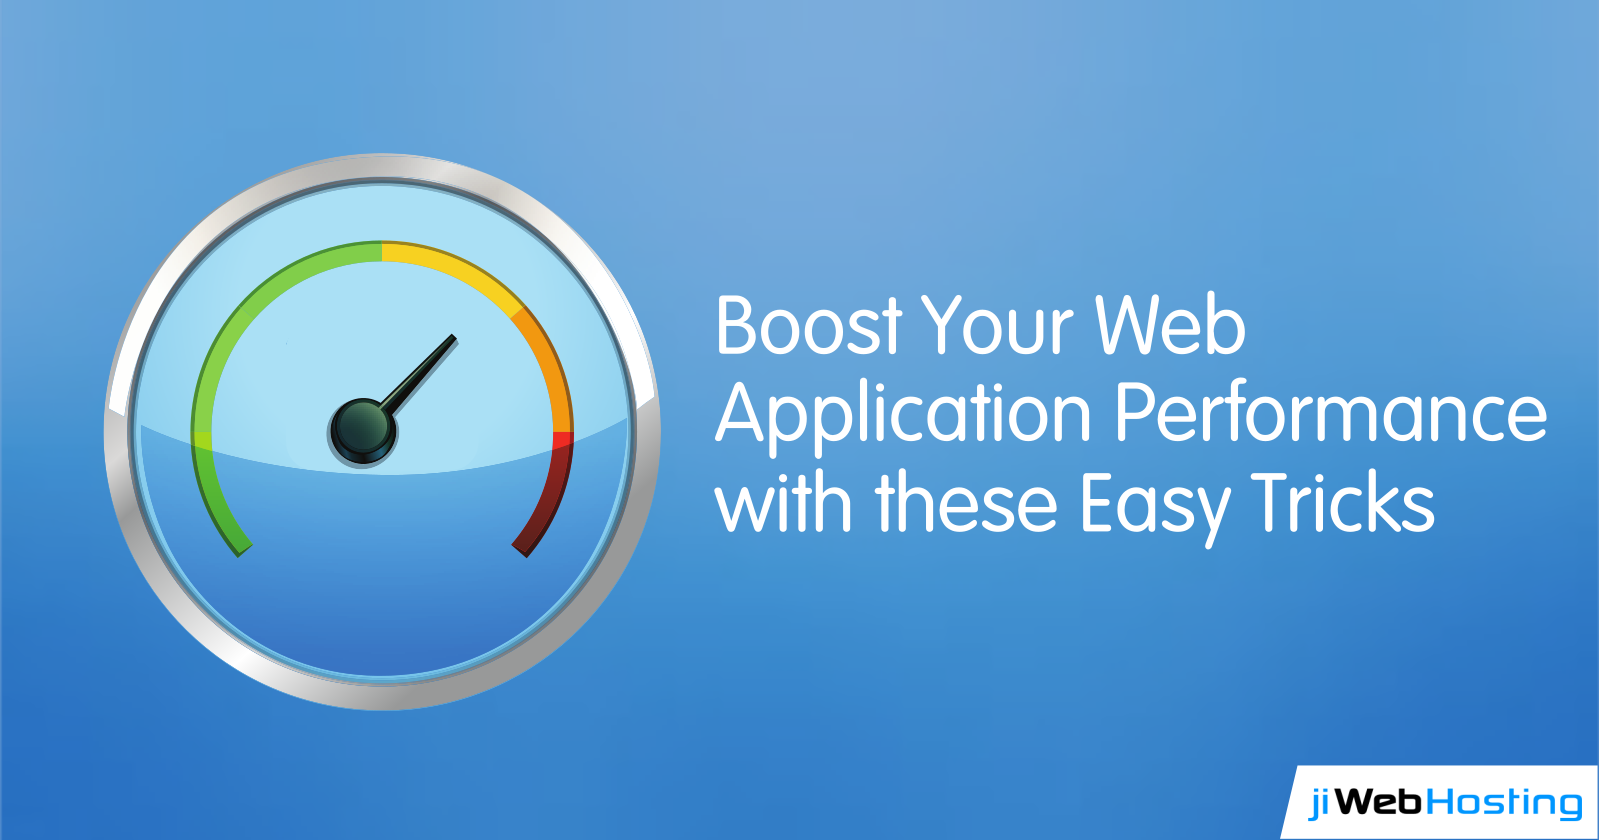 Boost Your Web Application Performance with these Easy Tricks